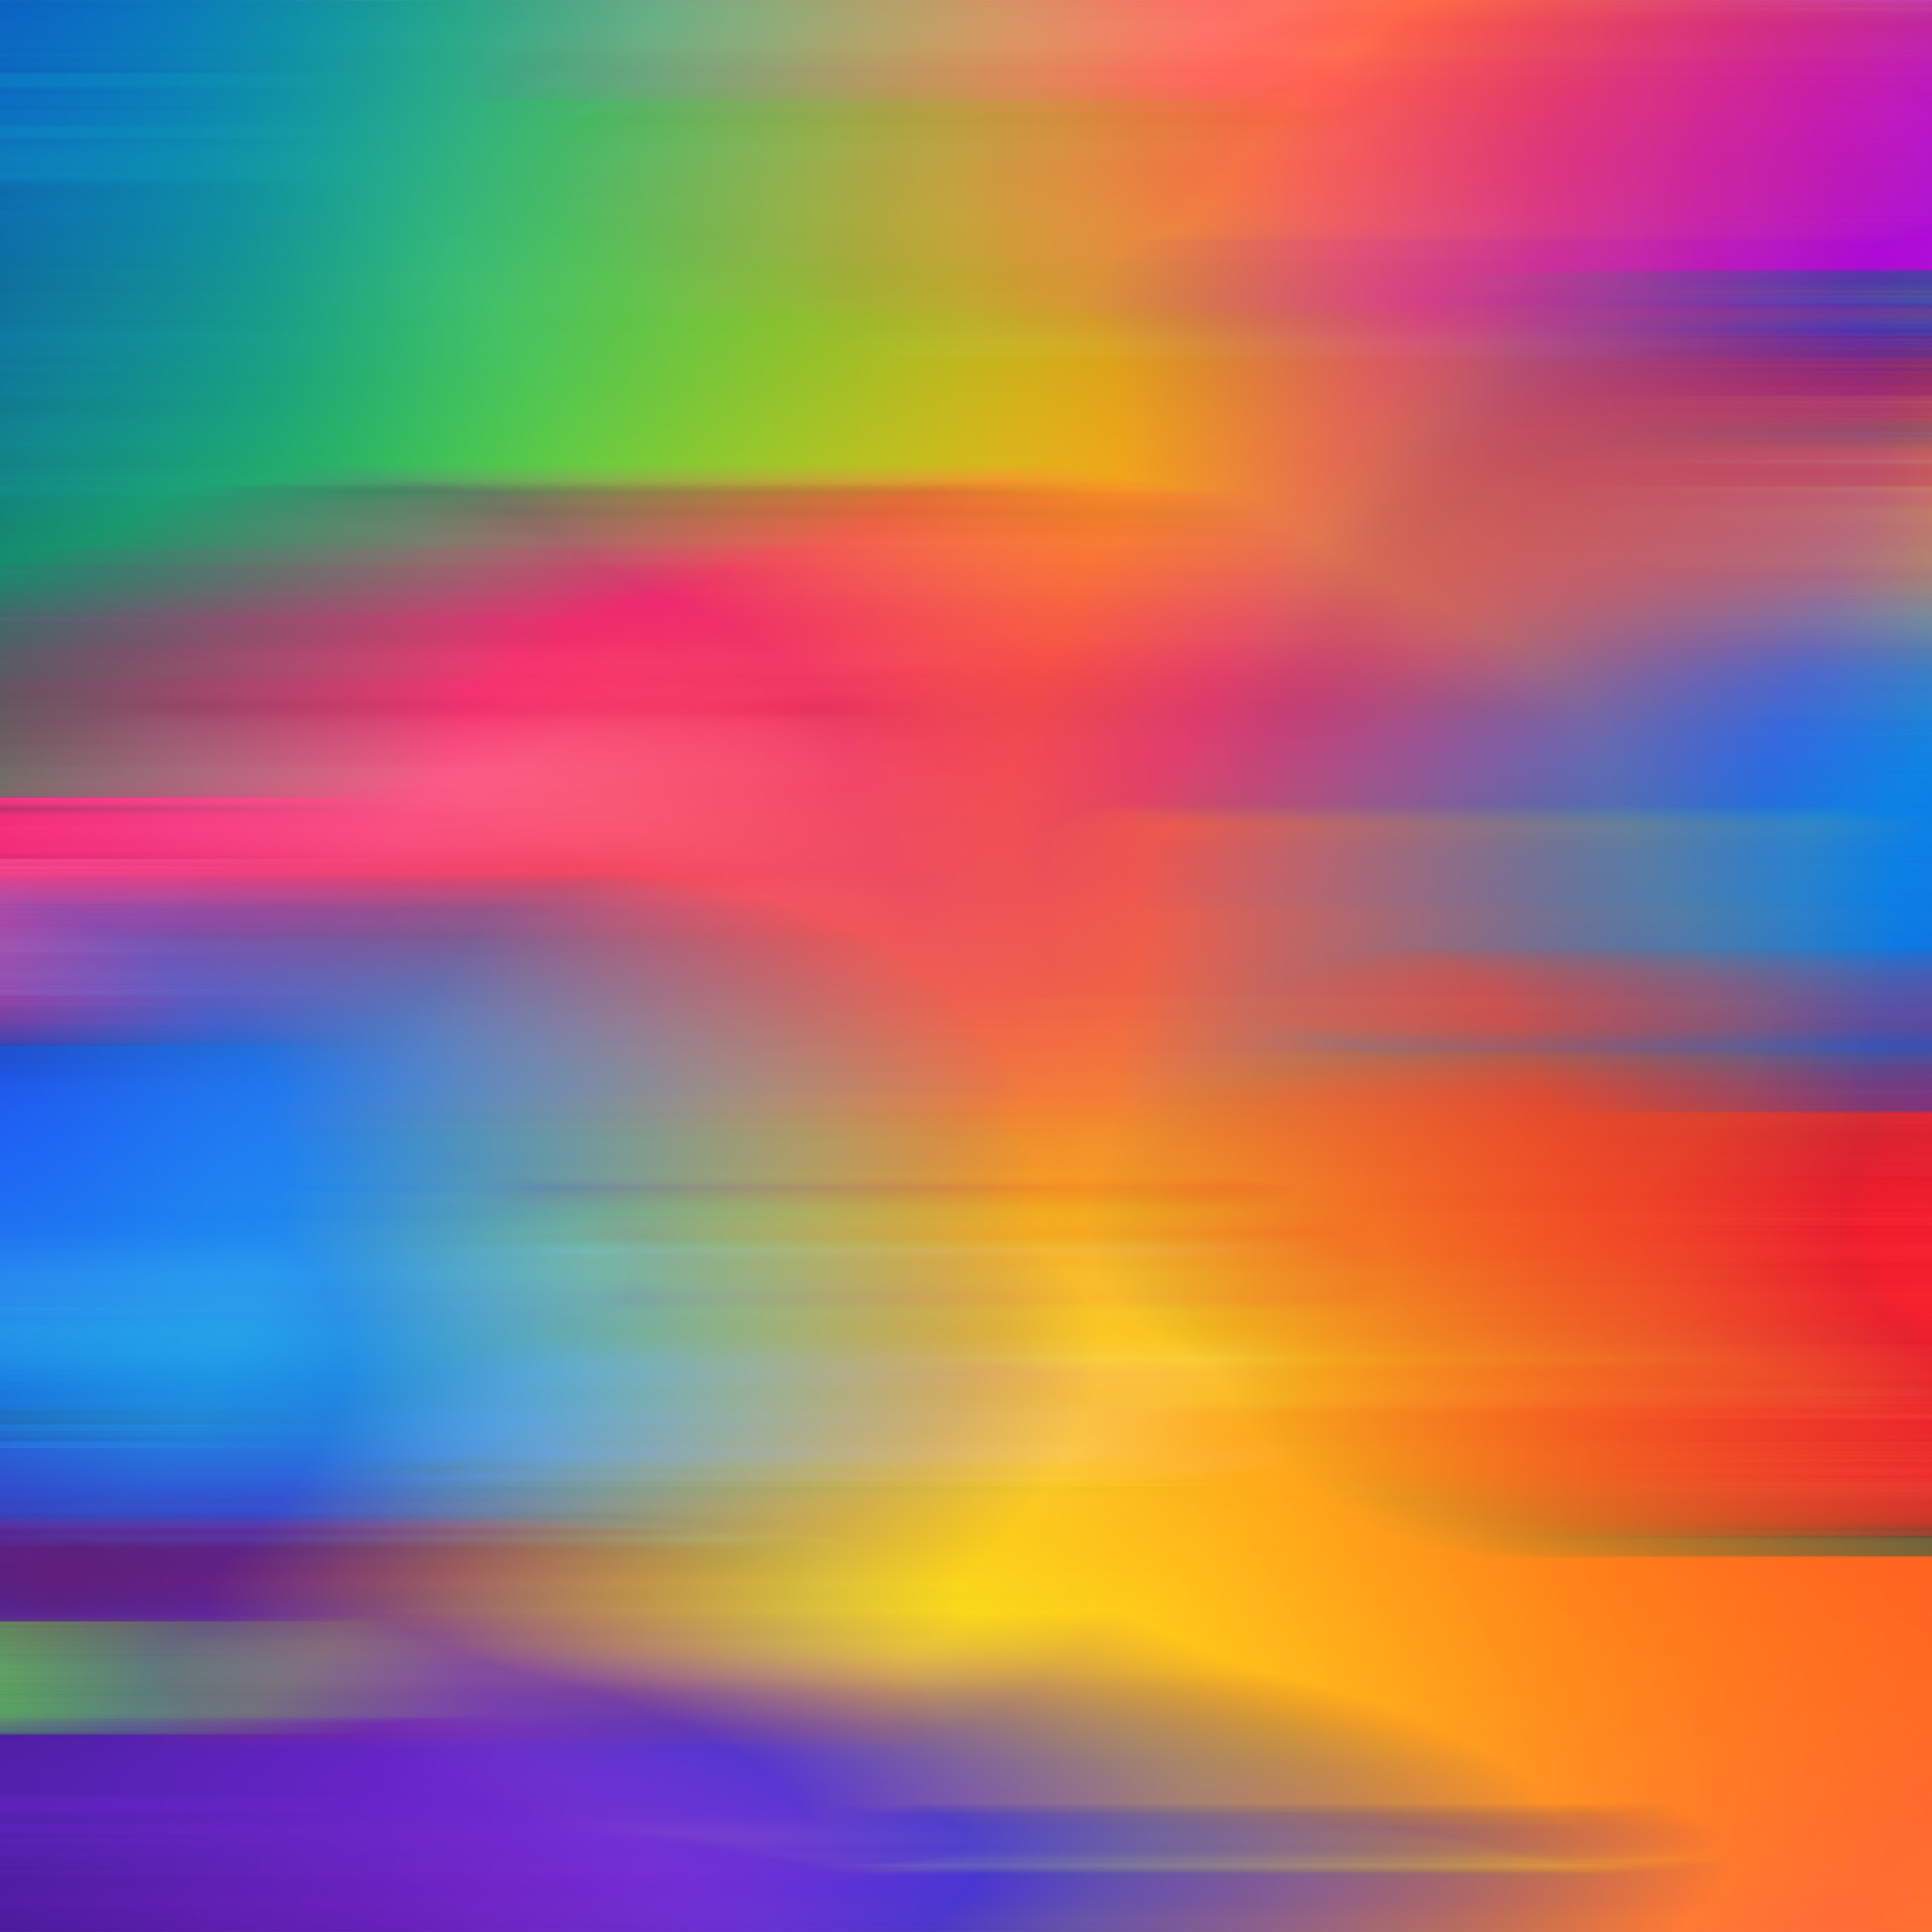 vn05-rainbow-color-paint-art-ink-default-pattern-motion-wallpaper